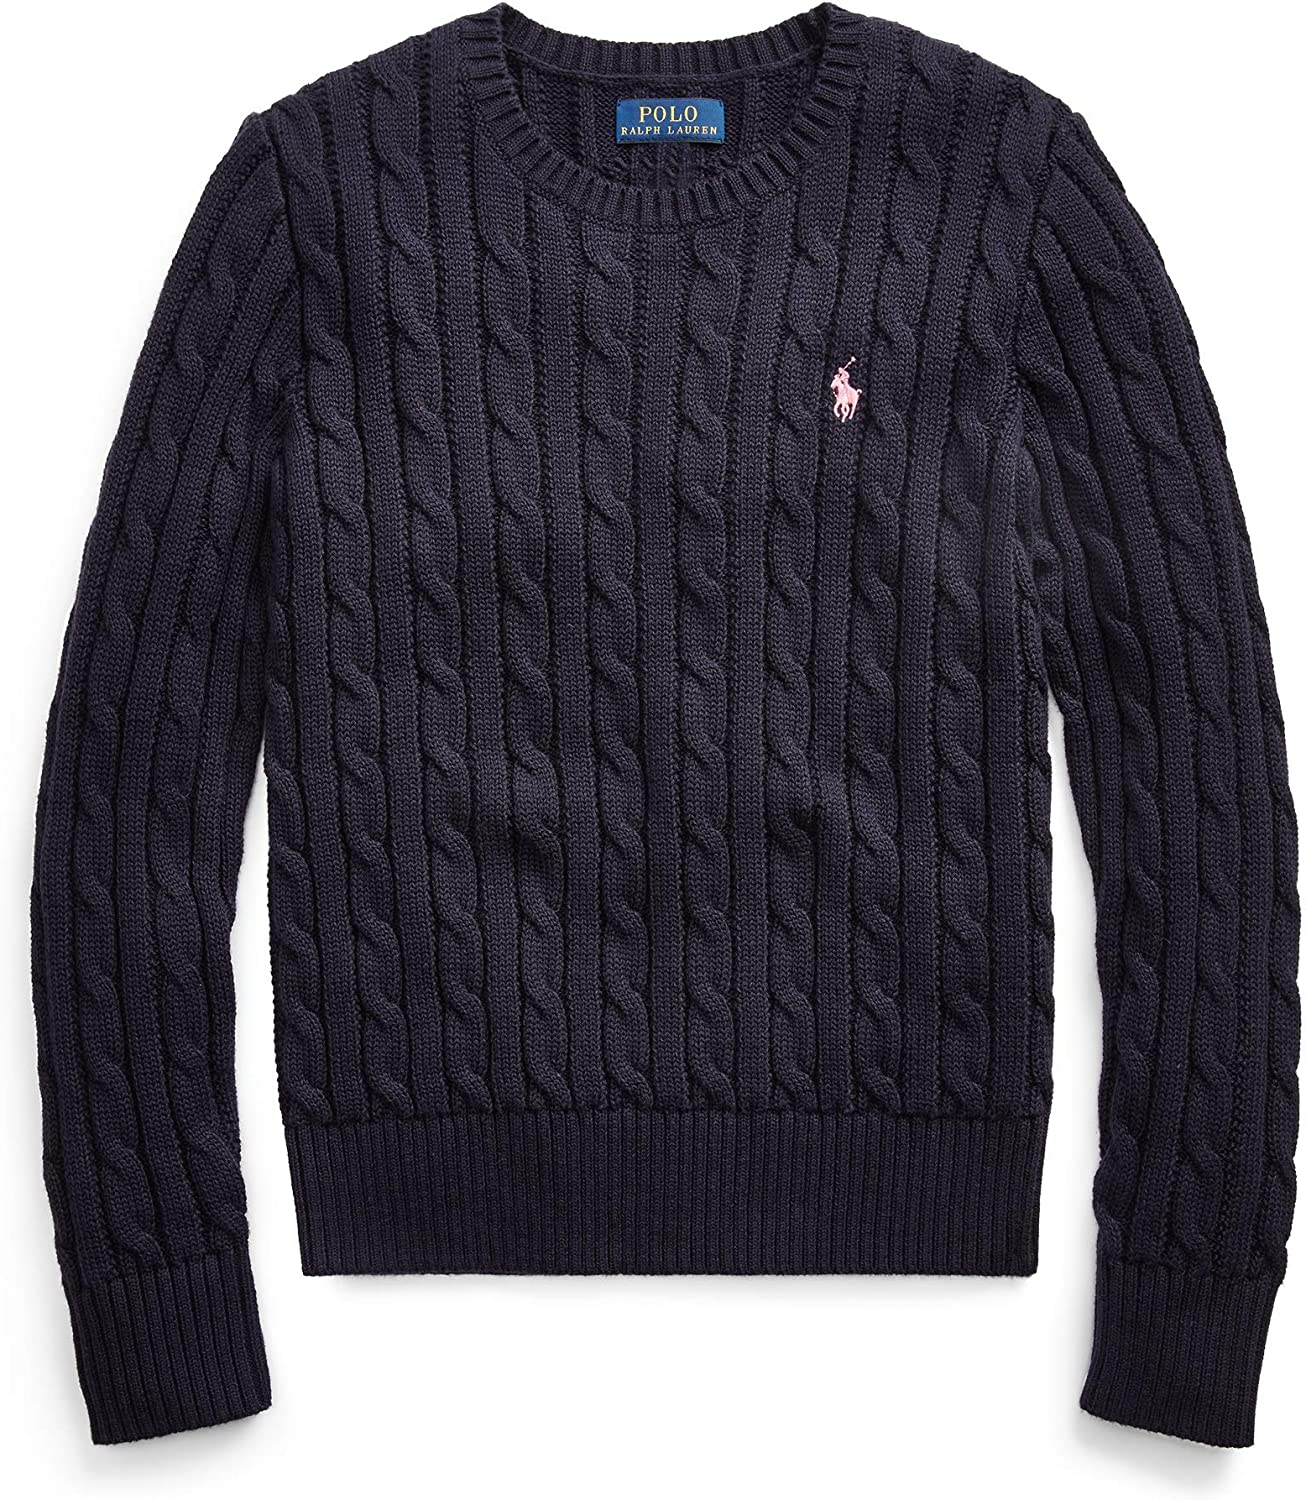 Polo Ralph Lauren Girl's Cable Knit Crew-Neck Sweater